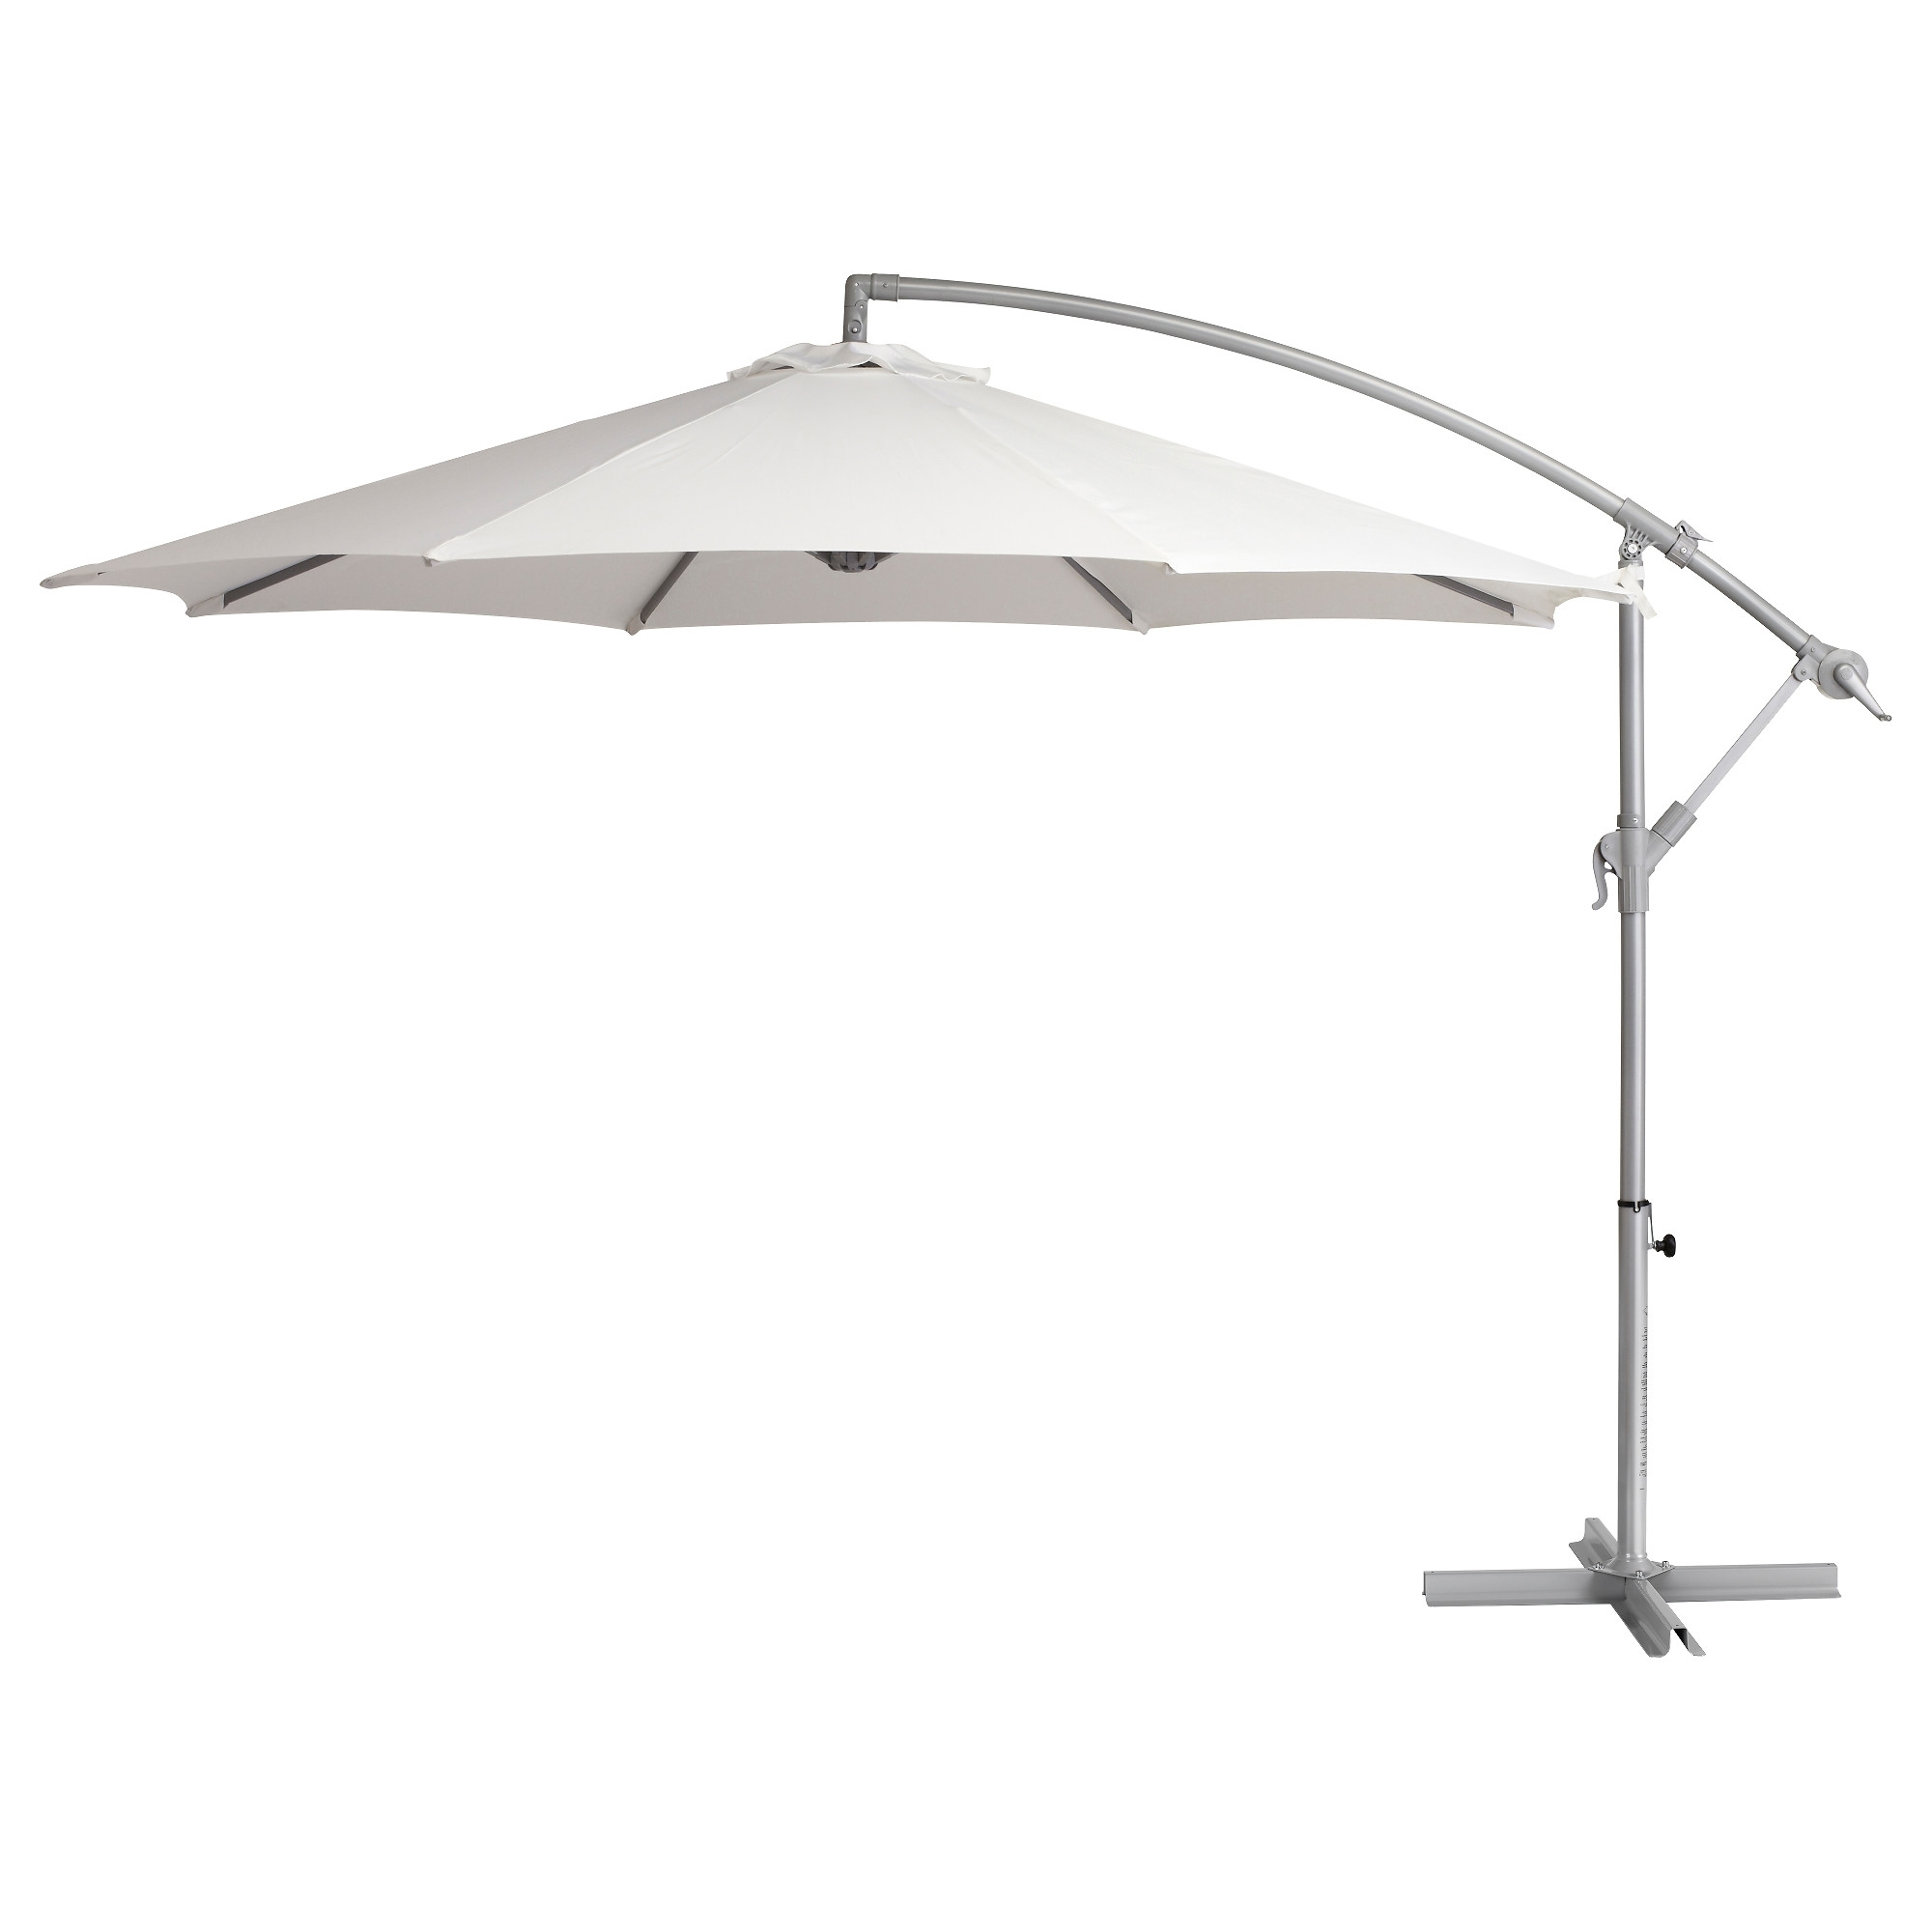 White Patio Umbrellas Within Most Recently Released 49 Ikea Patio Umbrella, Svart Umbrella Base Ikea (View 20 of 20)